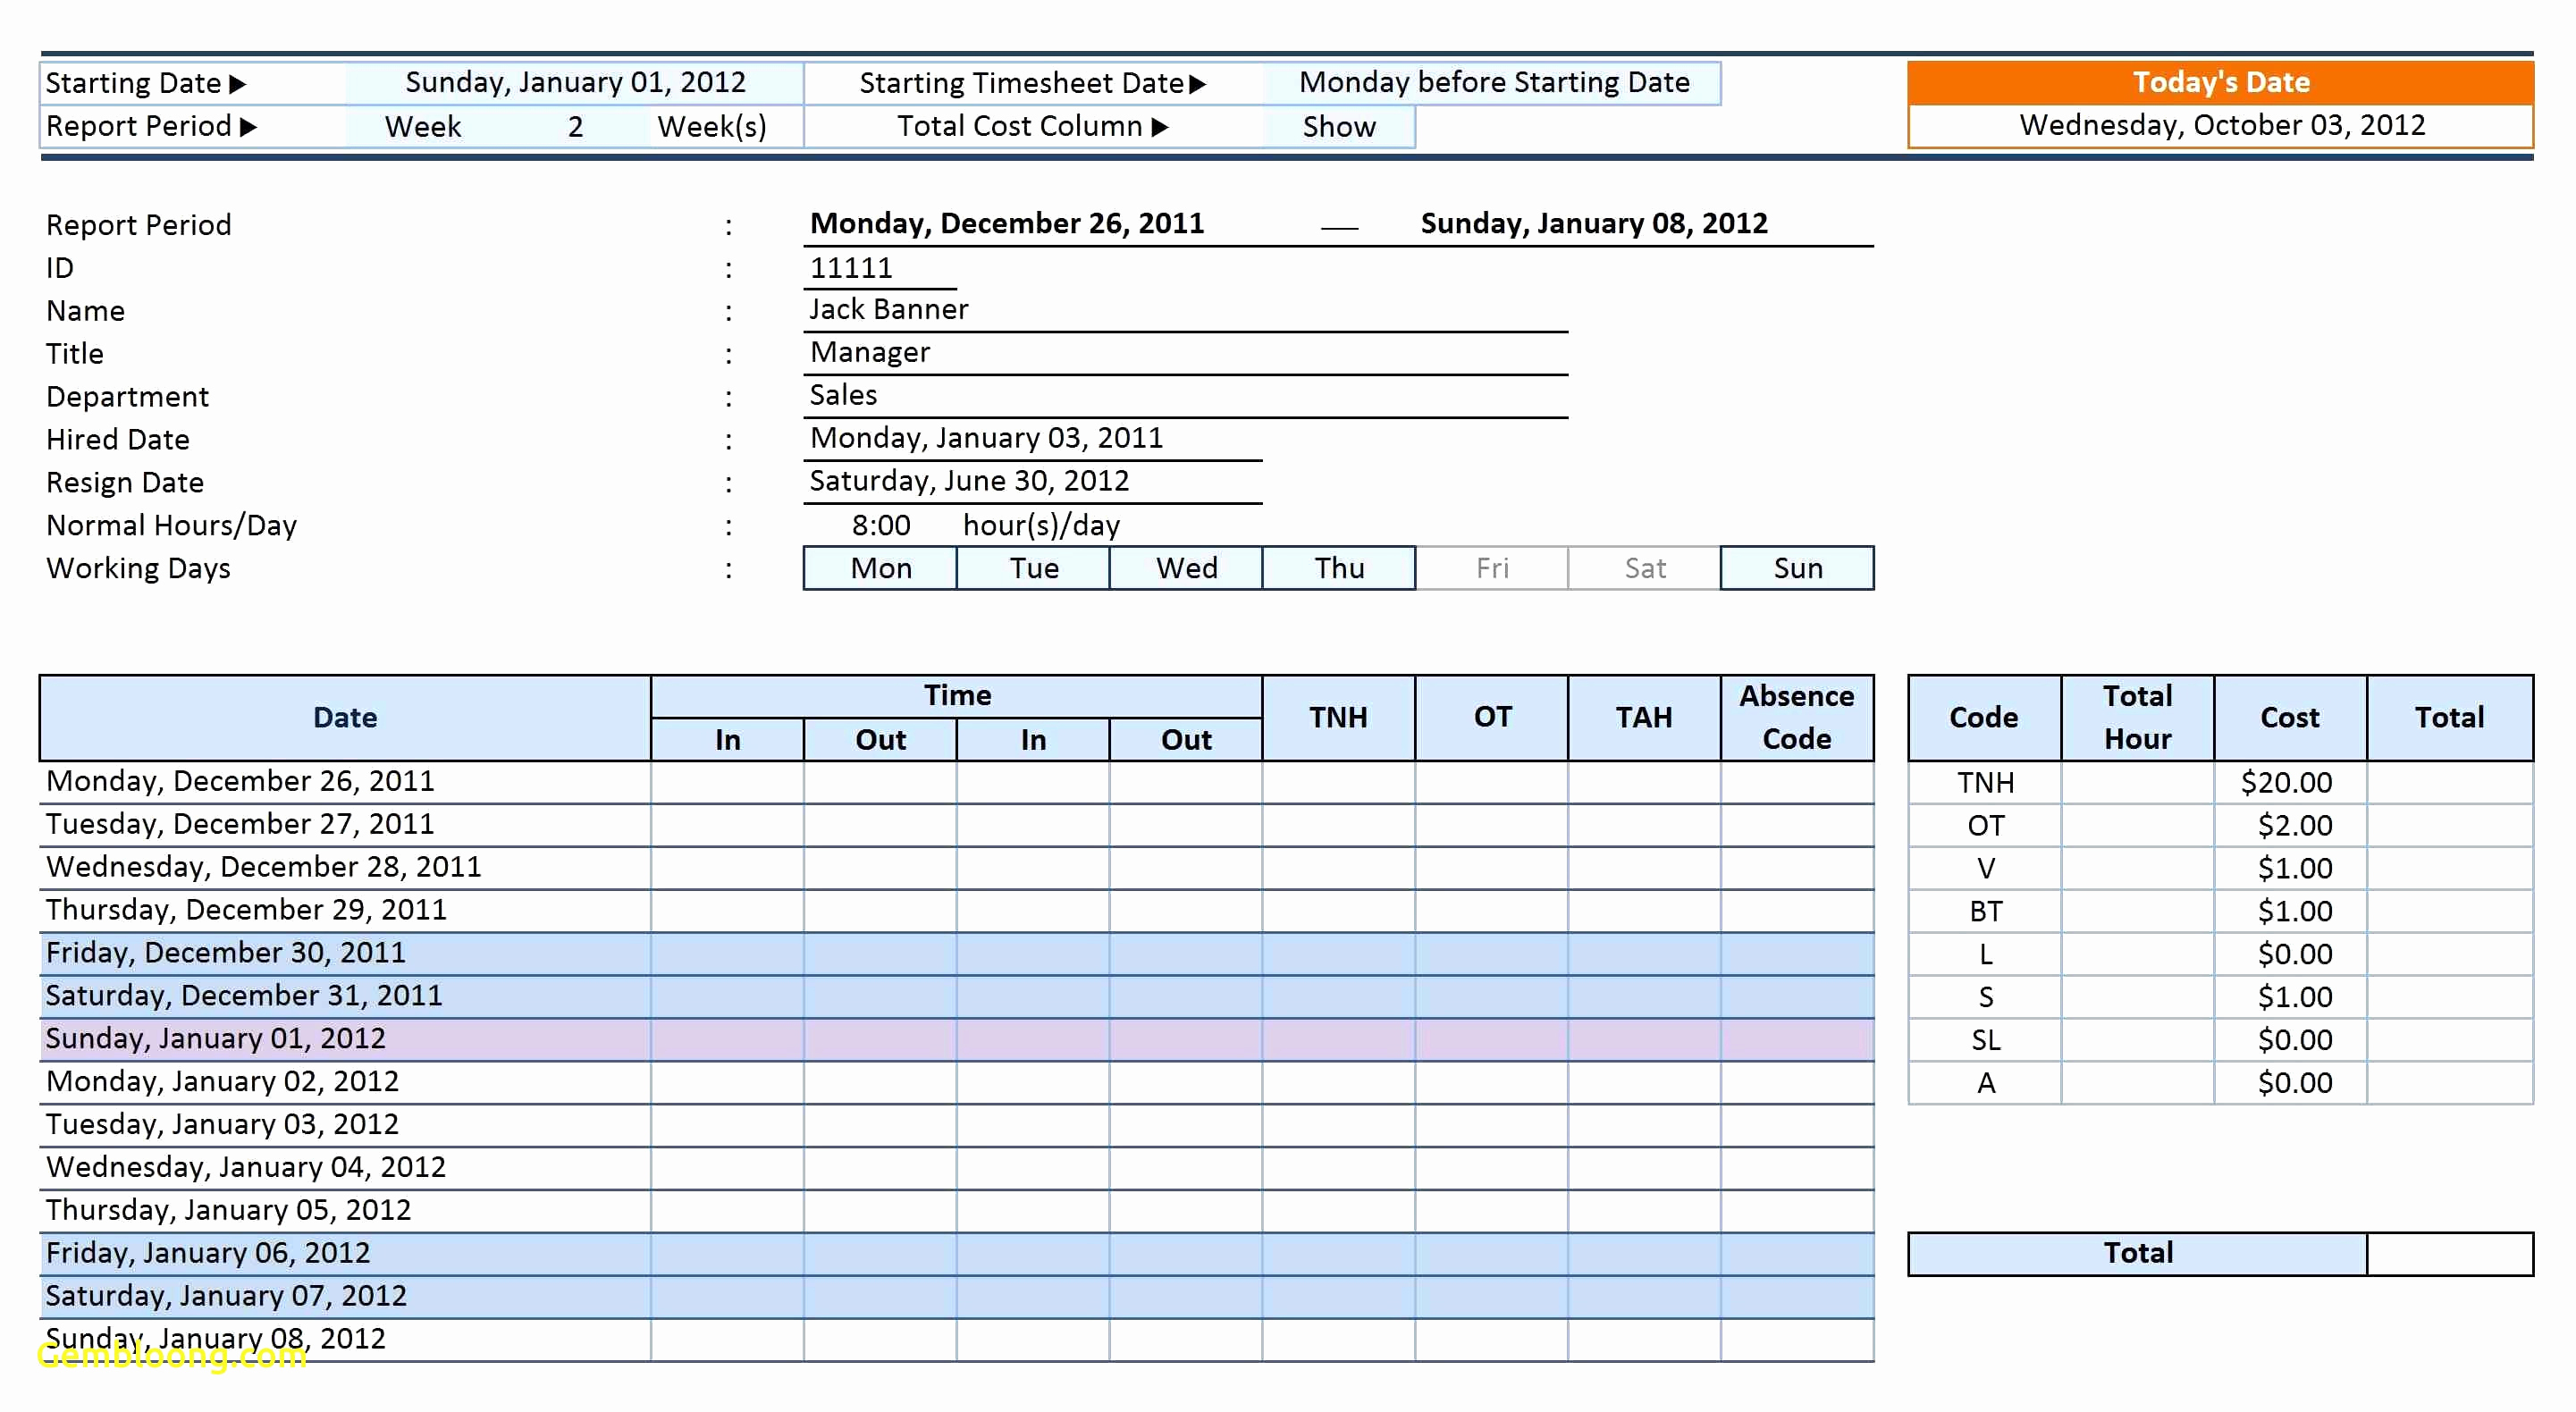 Schedule Of Values Spreadsheet With Regard To Goodwill Donation Excel Spreadsheet Unique Schedule Of Values